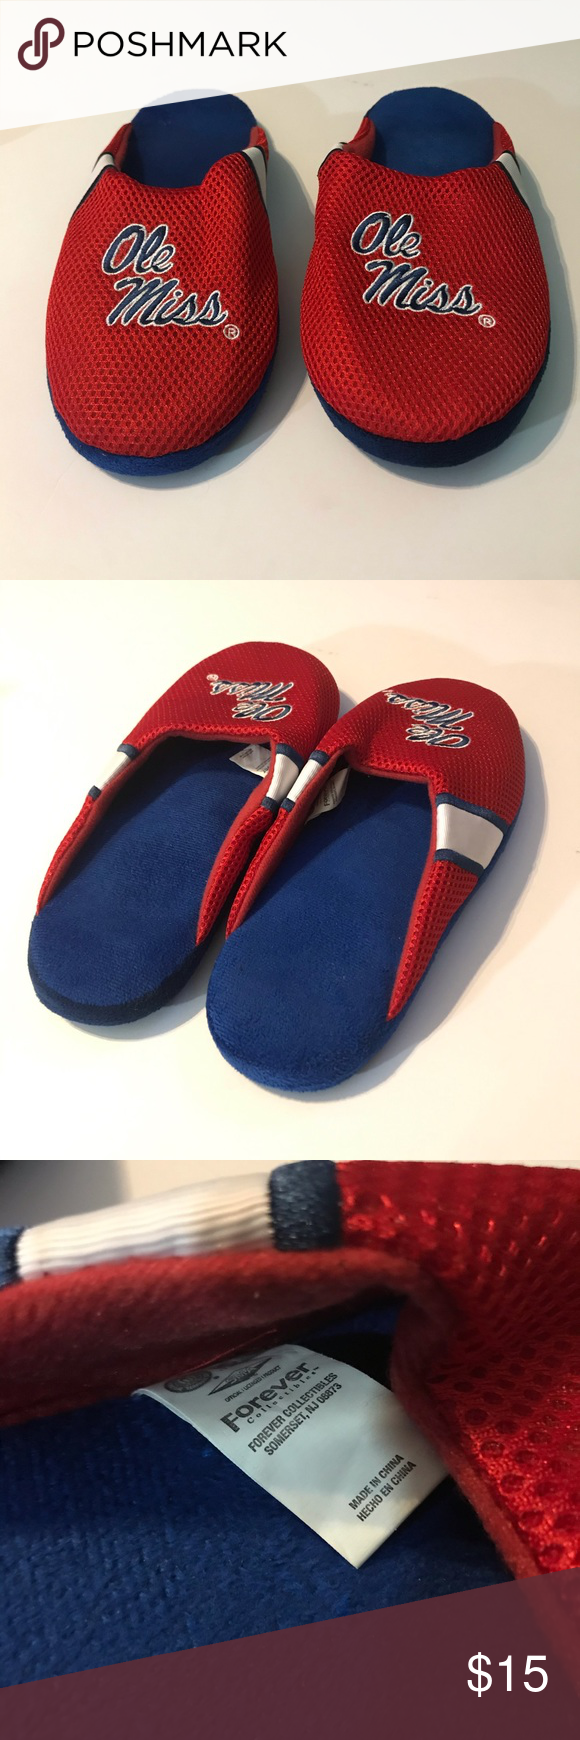 University of Mississippi Ole Miss Slippers 11/12 Ole